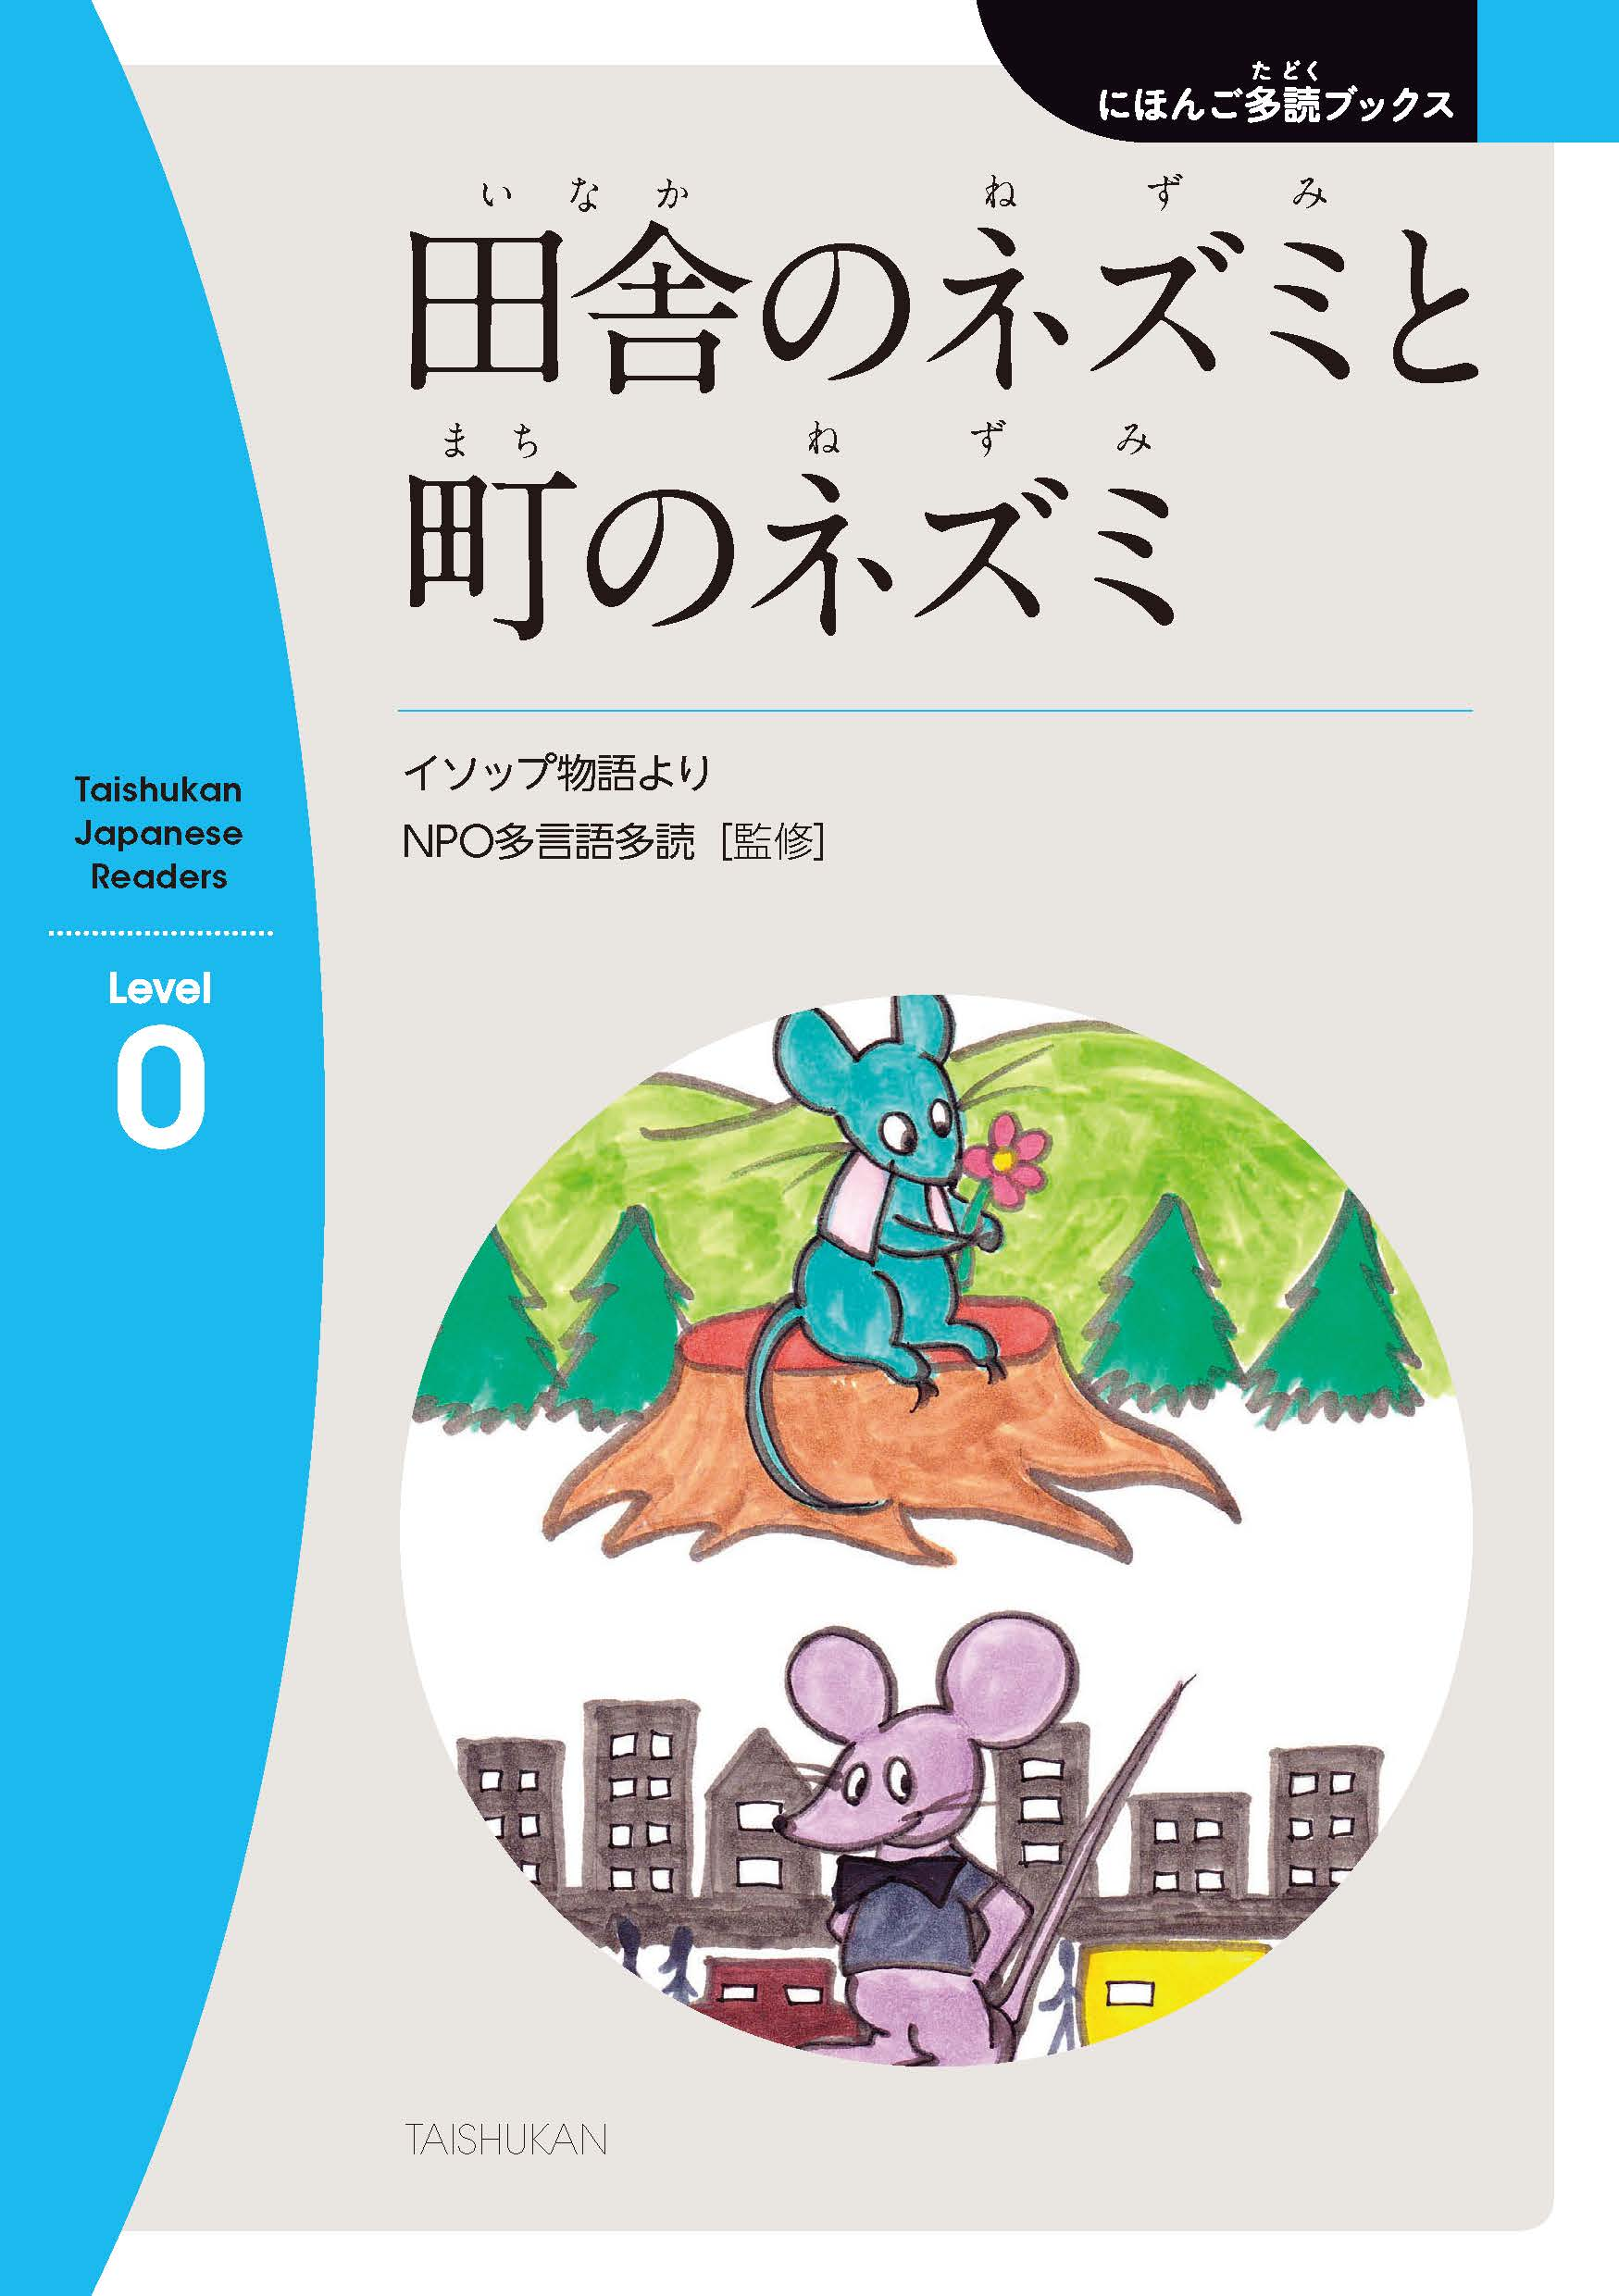 vol.1-1 田舎(いなか)のネズミと町(まち)のネズミ  The Town Mouse and the Country Mouse